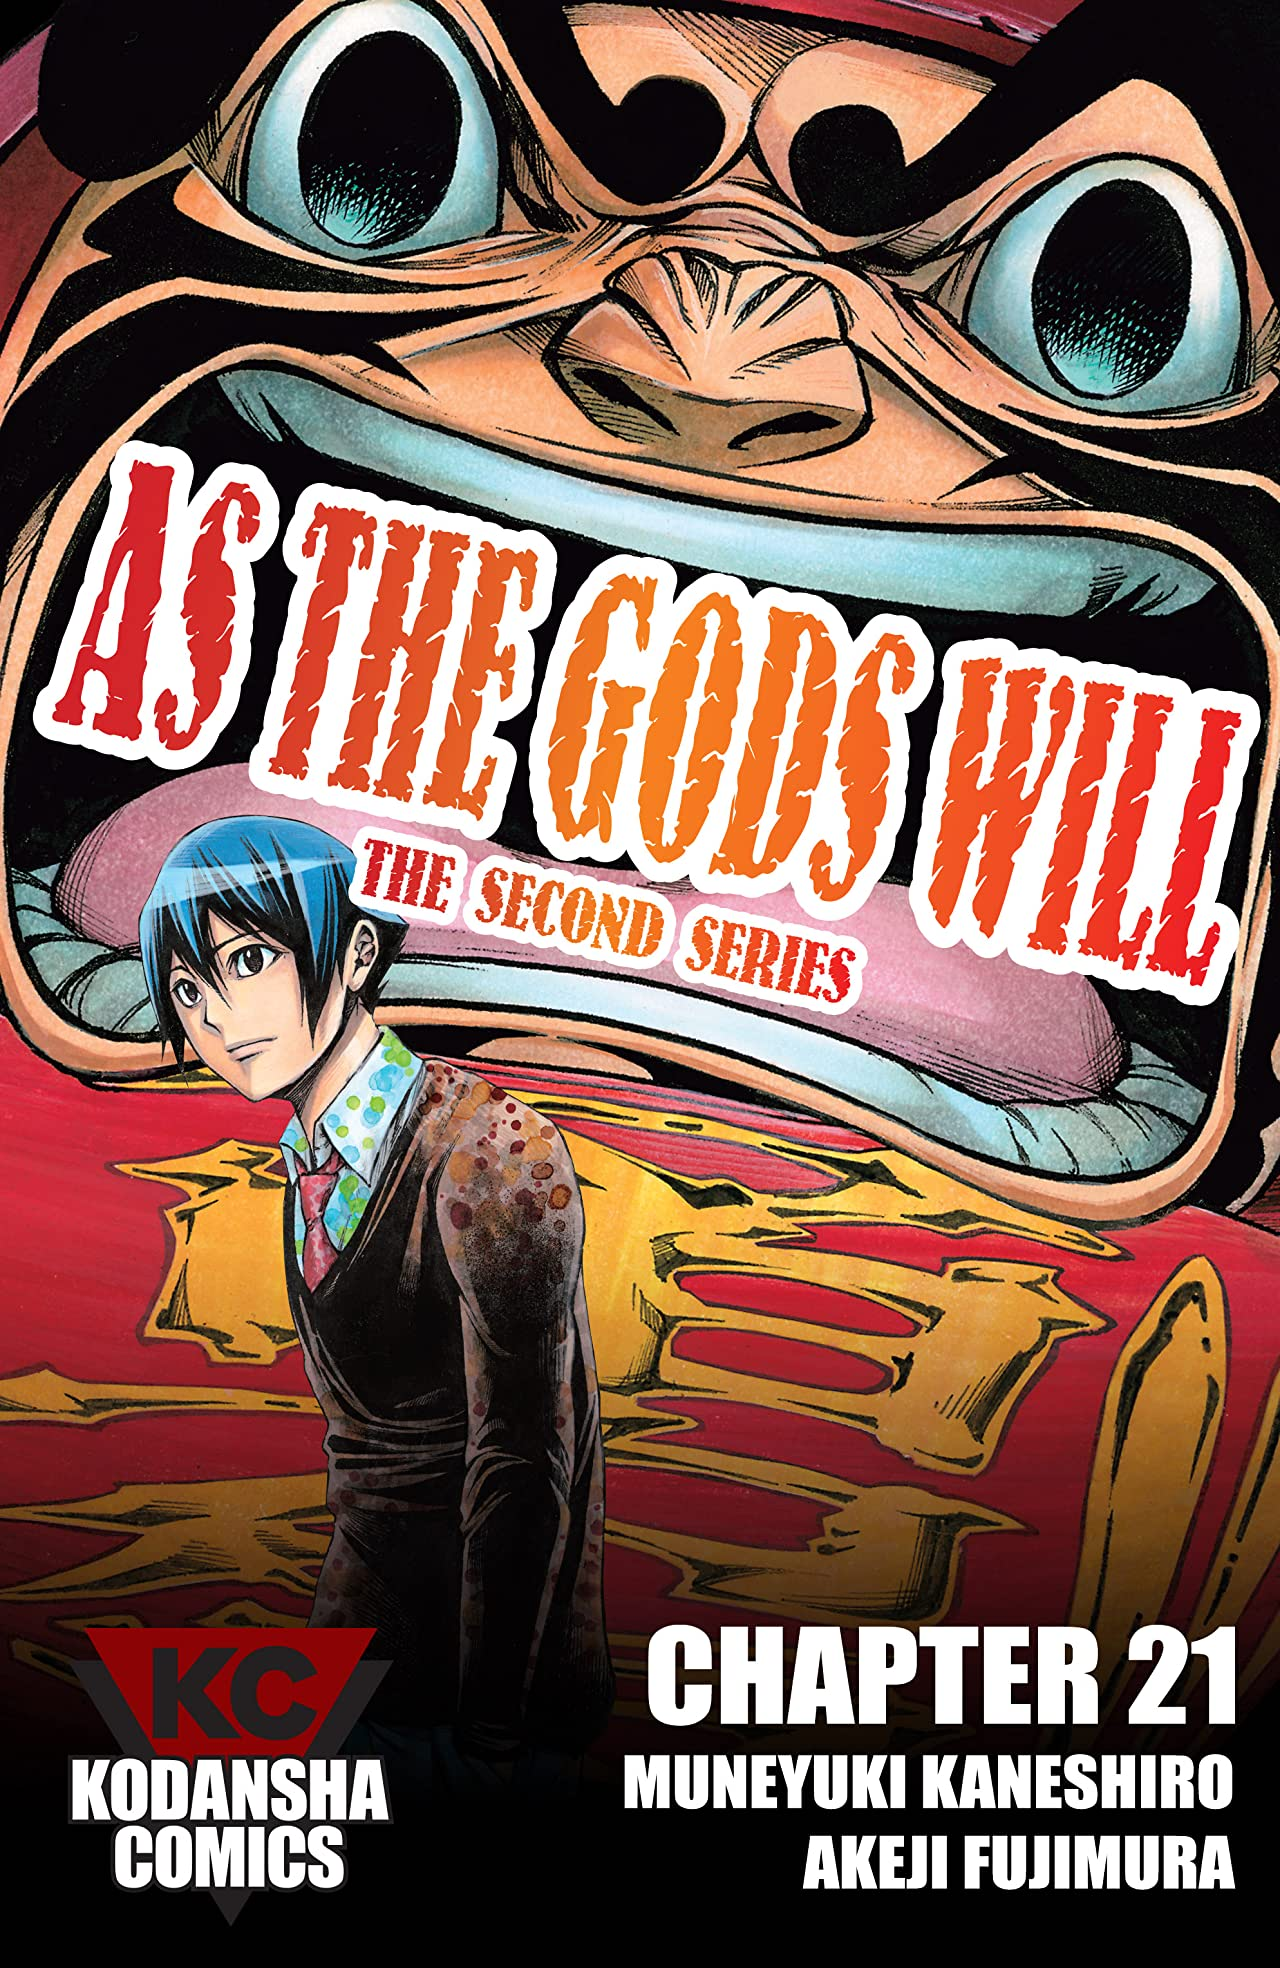 As The Gods Will: The Second Series #21